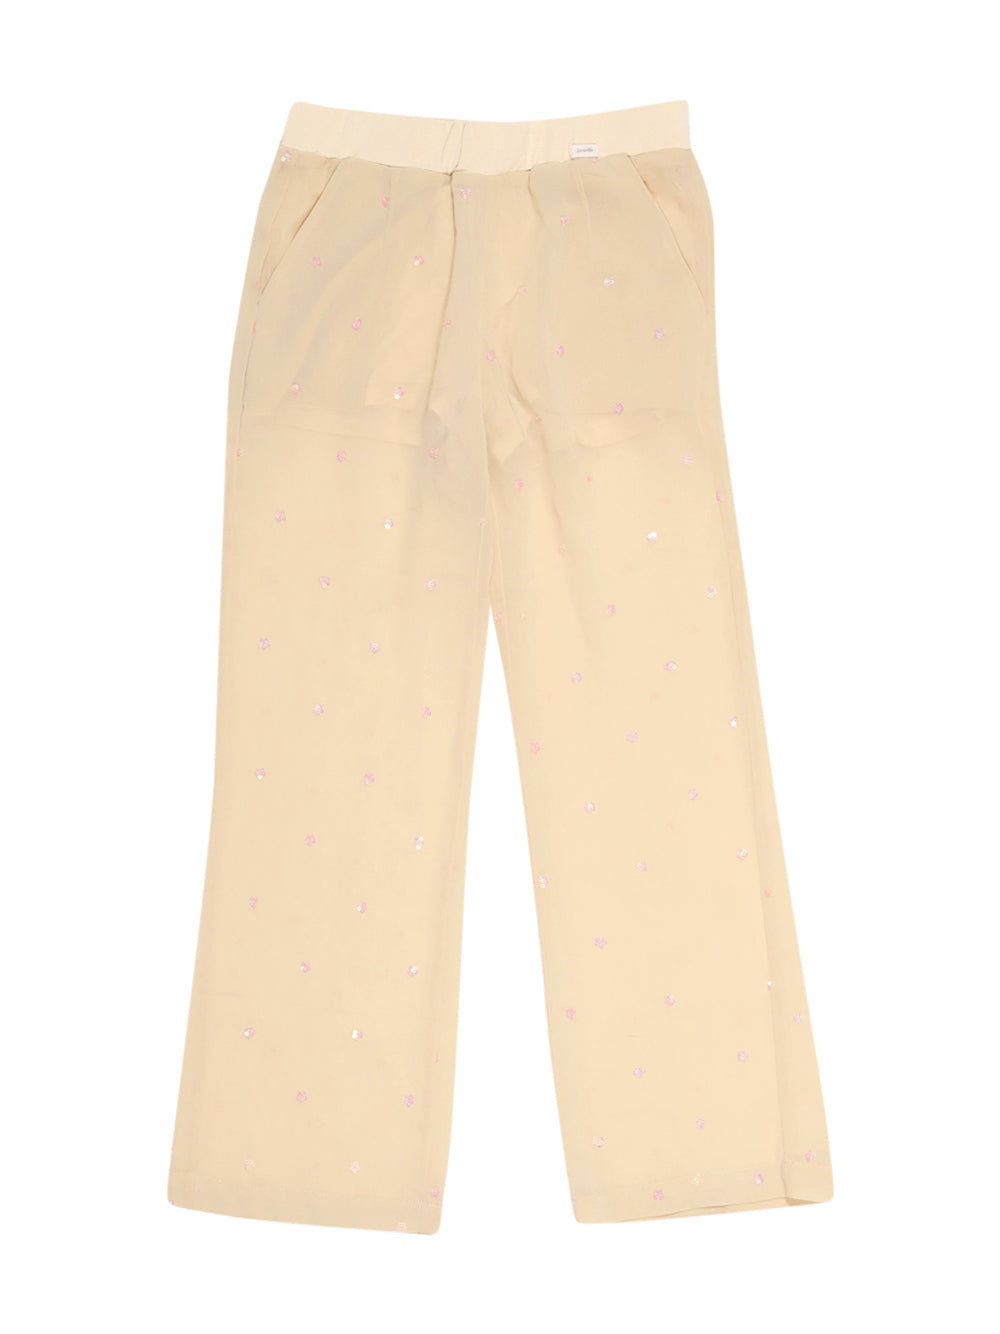 Front photo of Preloved Silvian Heach Beige Girl's trousers - size 7-8 yrs